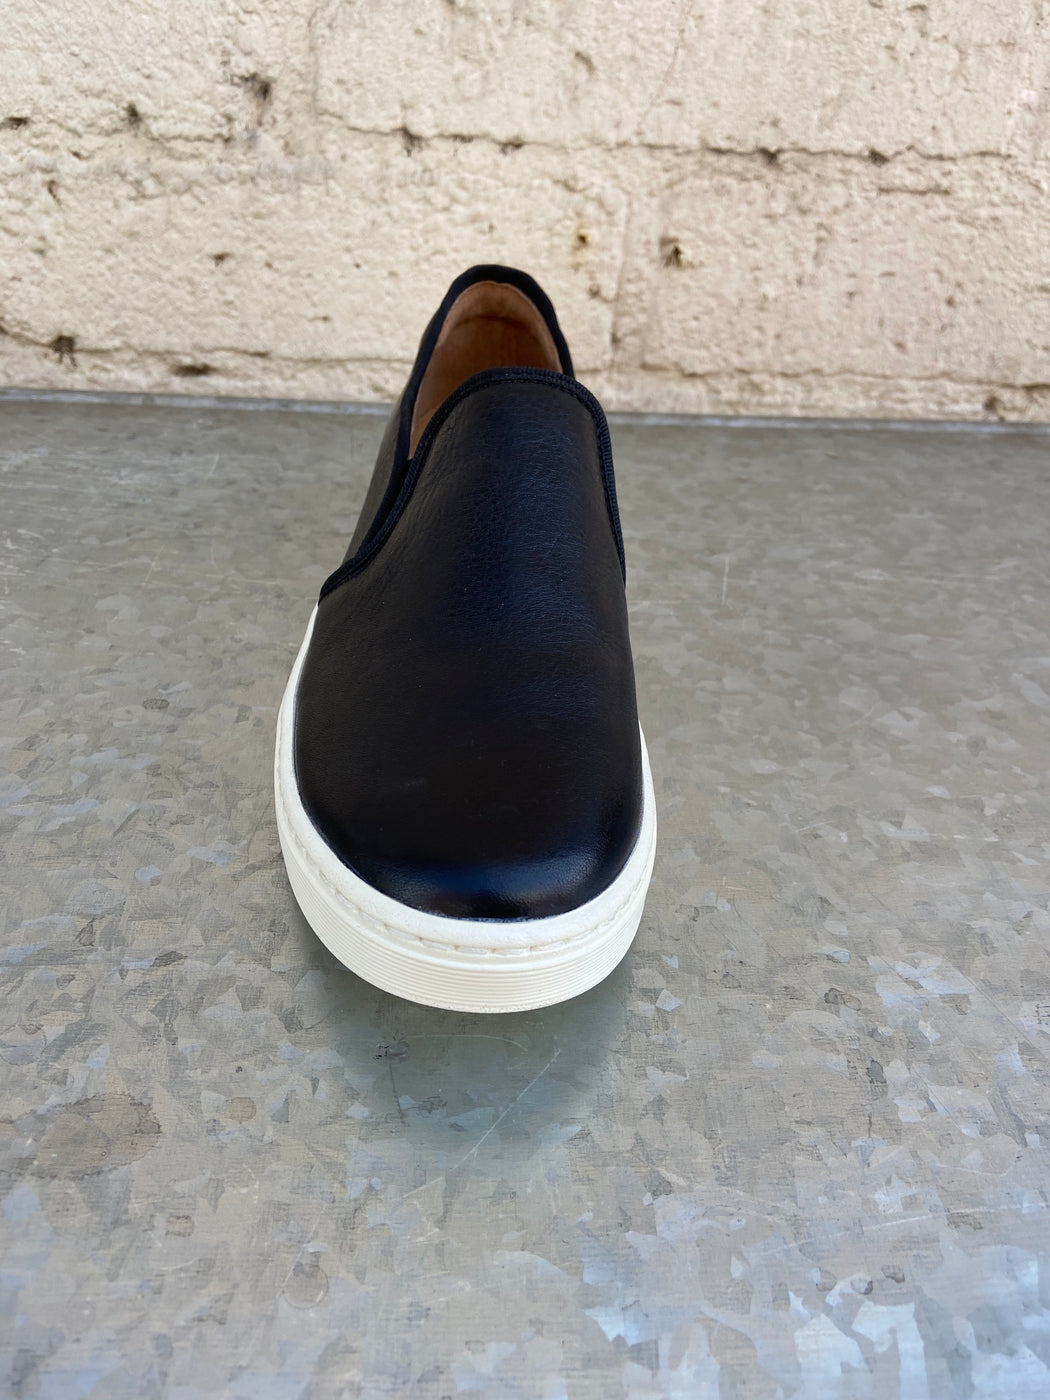 "Rubber Heel measures approximately 0.25 inches"" Stretch goring Arch cookie for support Lightweight and flexible outsole Heel height: 1/4 inch"